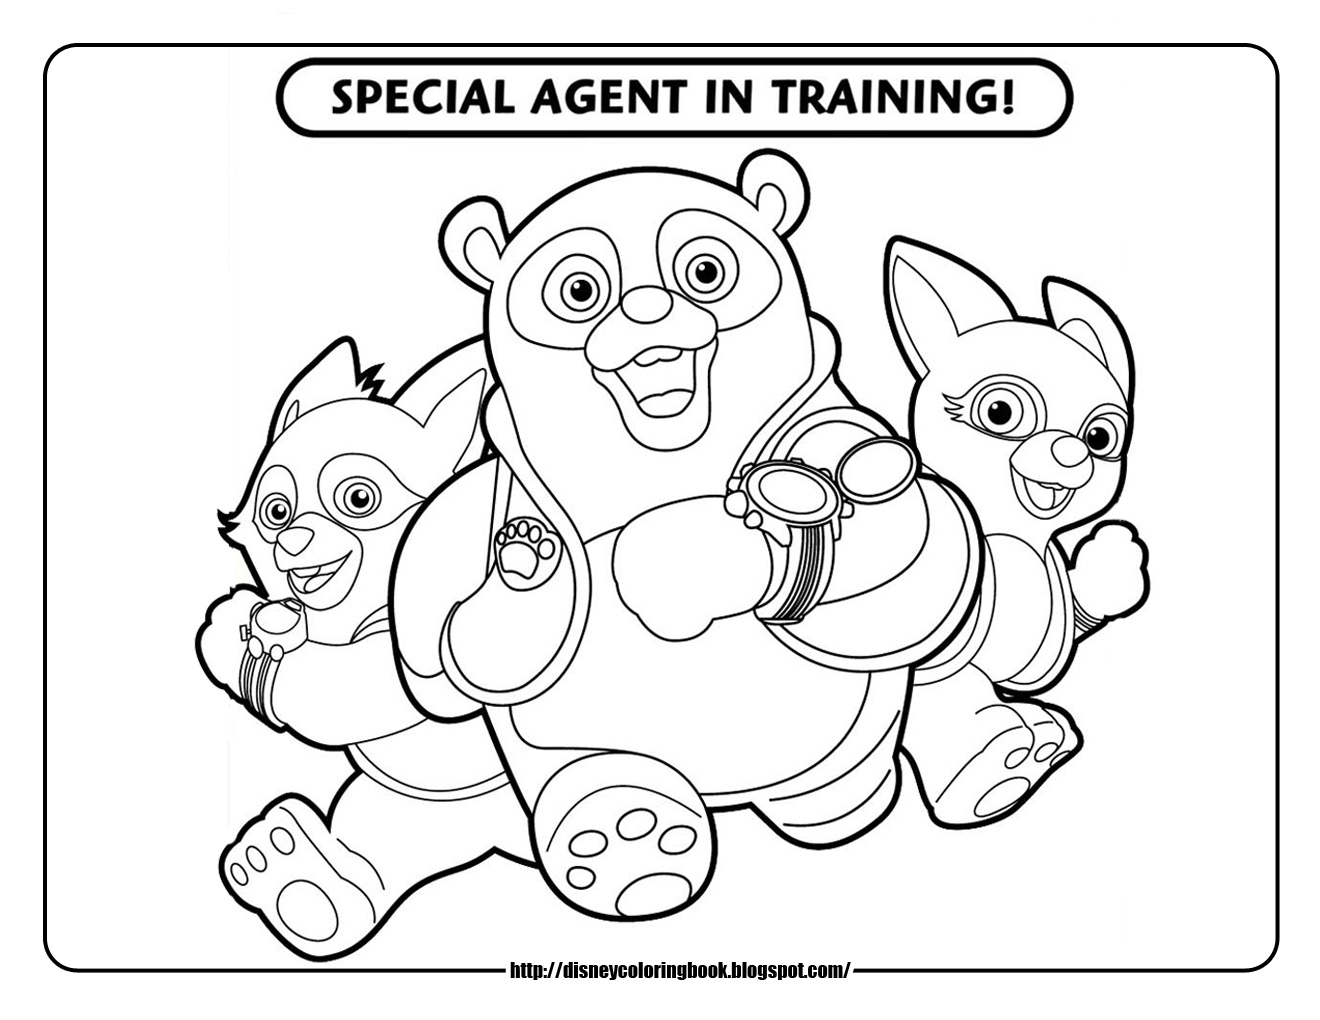 Disney Coloring Pages And Sheets For Kids Special Agent Disney Jr Coloring Pages